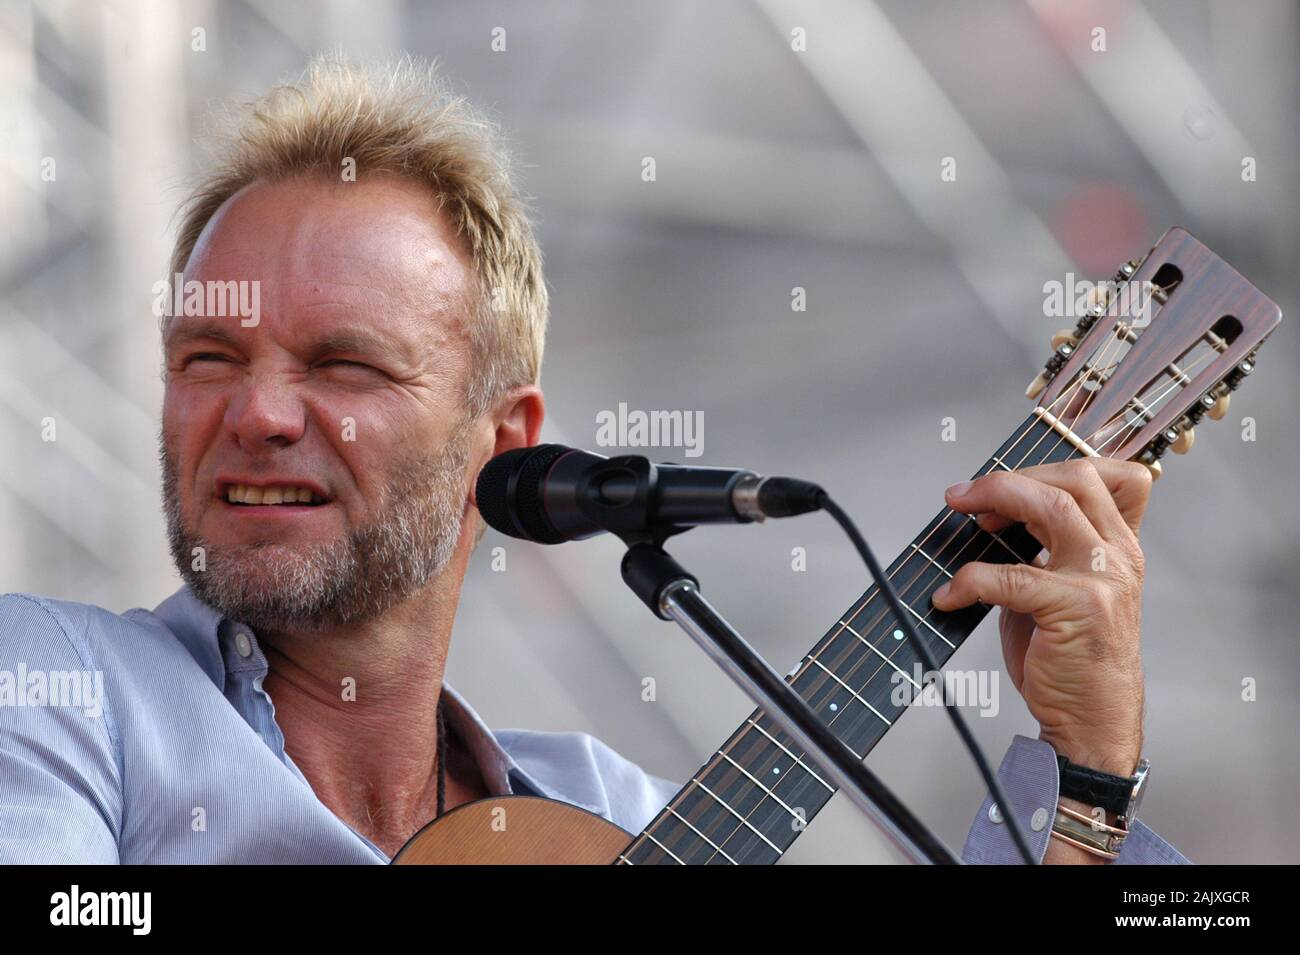 """Verona Italy 09/20/2003, Arena : Sting during the soundcheck before the concert of the musical event """"Festivalbar 2003"""". Stock Photo"""